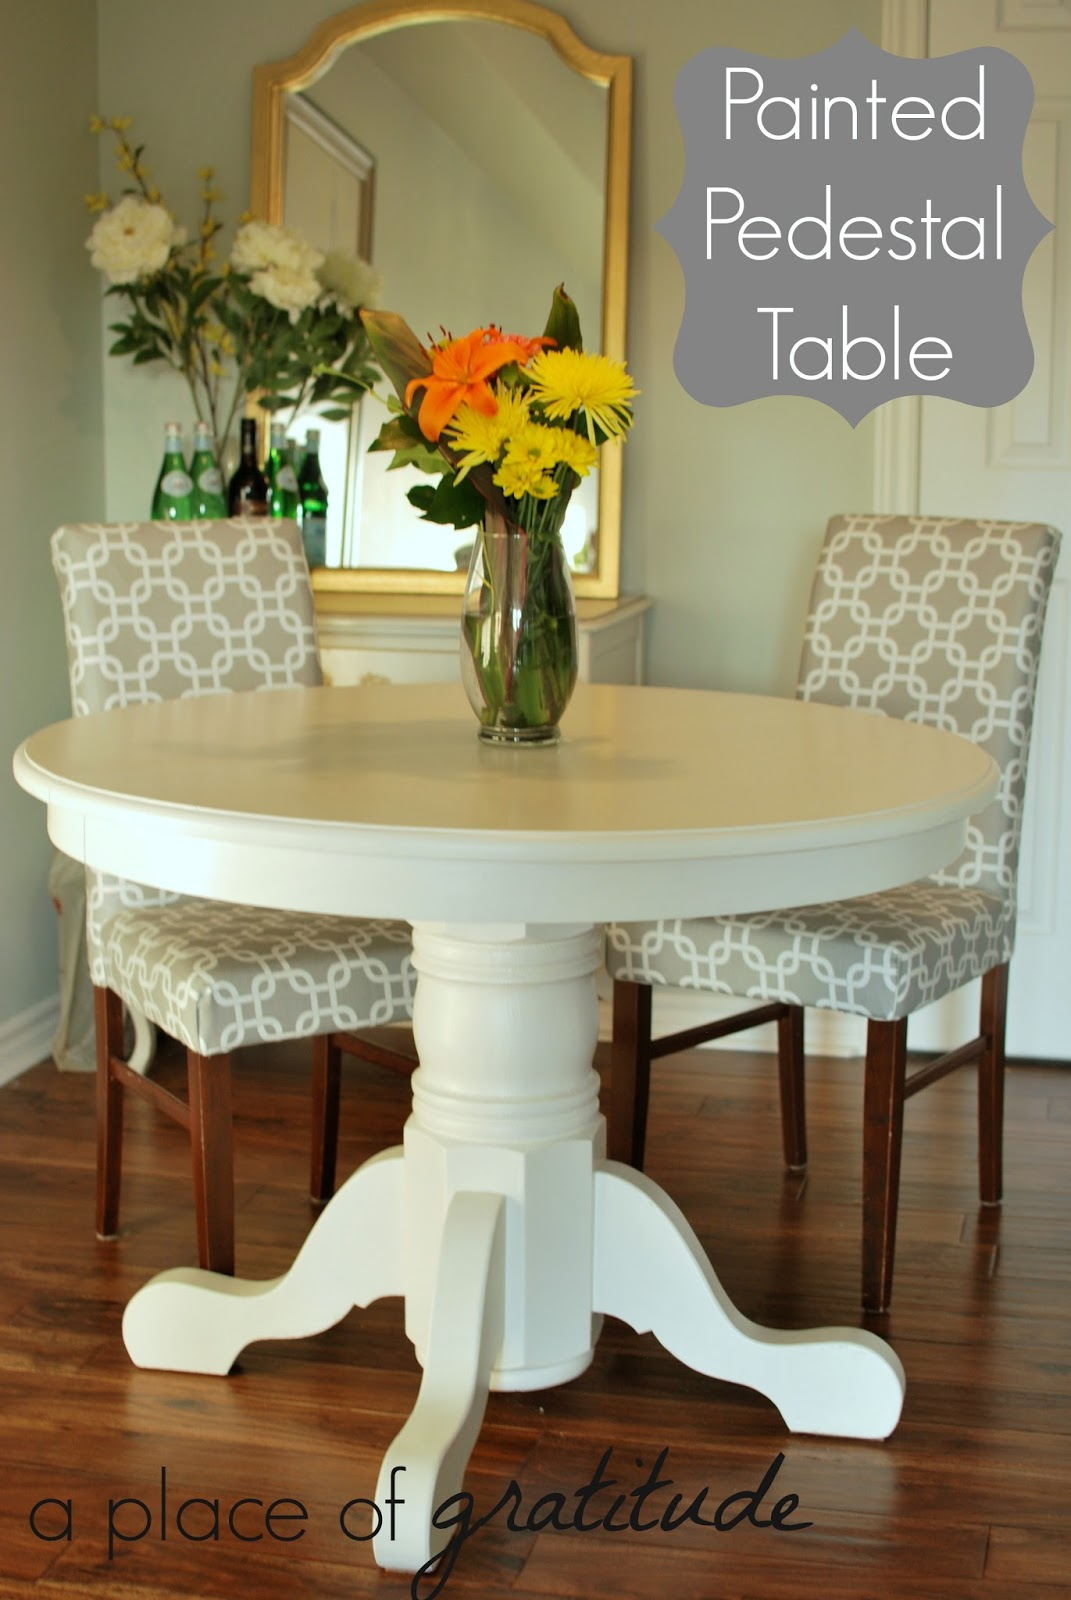 A Place Of Gratitude Painted Pedestal Table